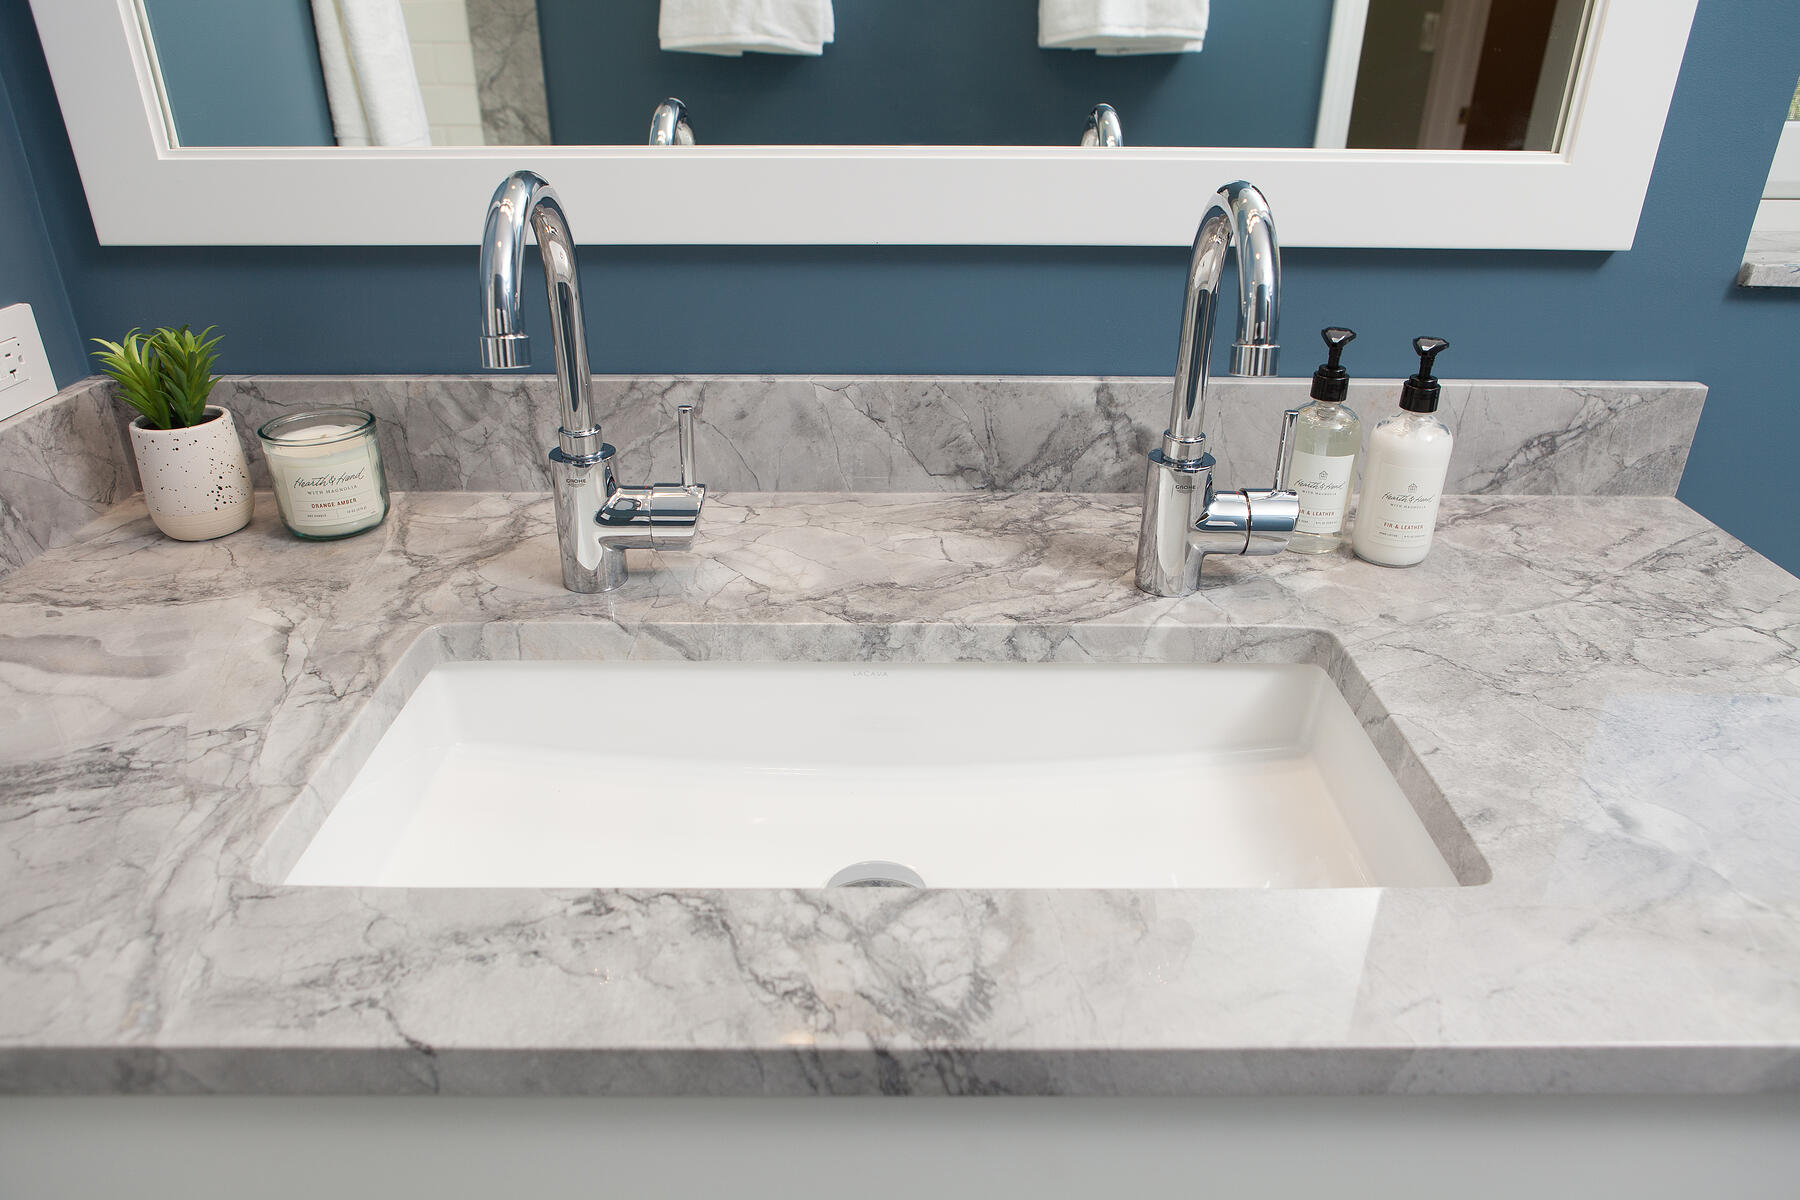 Classic style in this hall bath remodel in Libertyville, Illinois with blue walls, white mirror, chrome hardware and gray countertops including double faucets with a single basin sink.